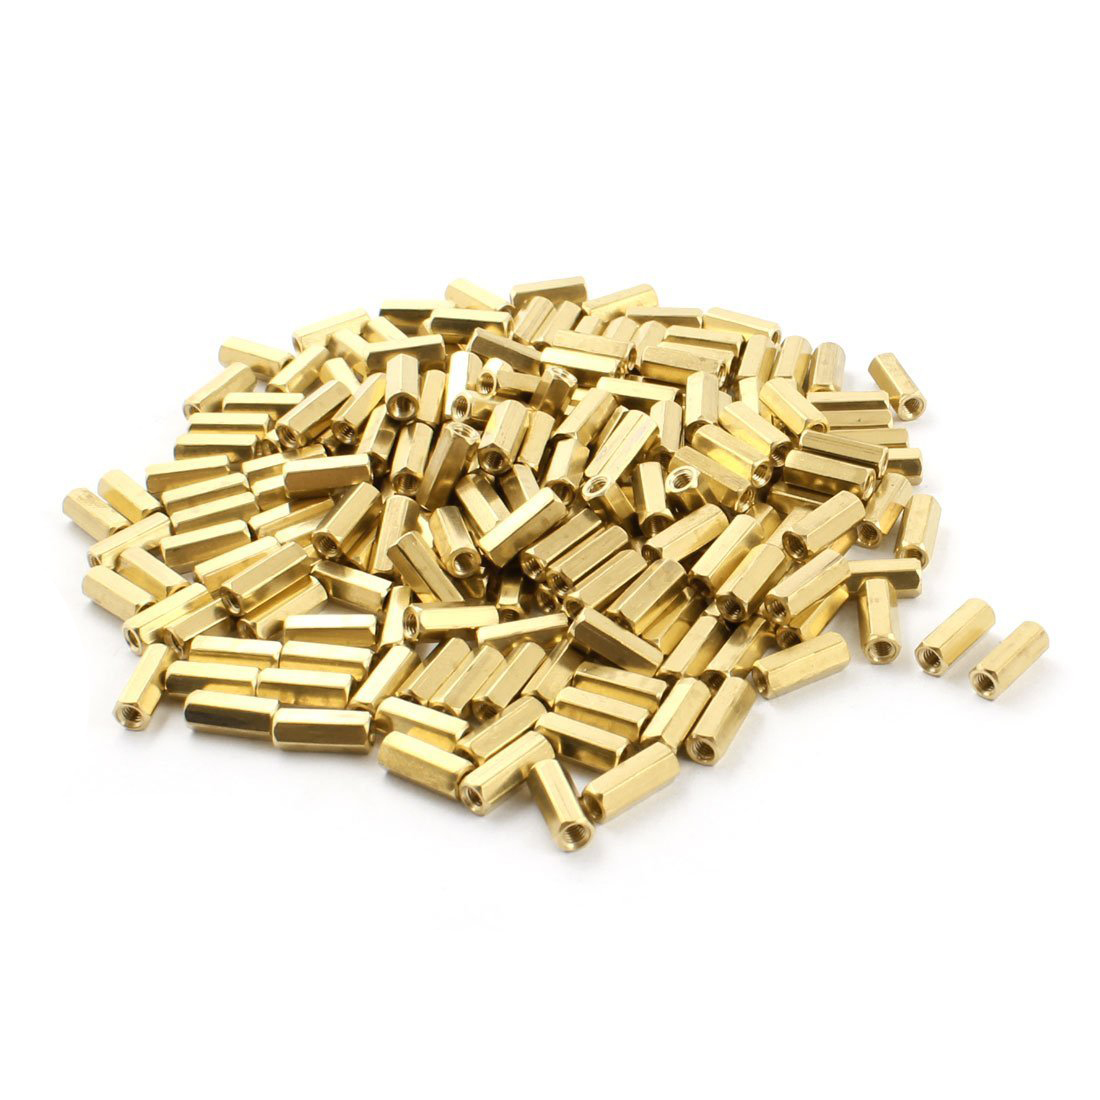 200 x M3 Female Thread Brass Pillar PCB Standoff Hexagonal Spacer 12mm коврик для ванной iddis curved lines 50x80 см 402a580i12 page 2